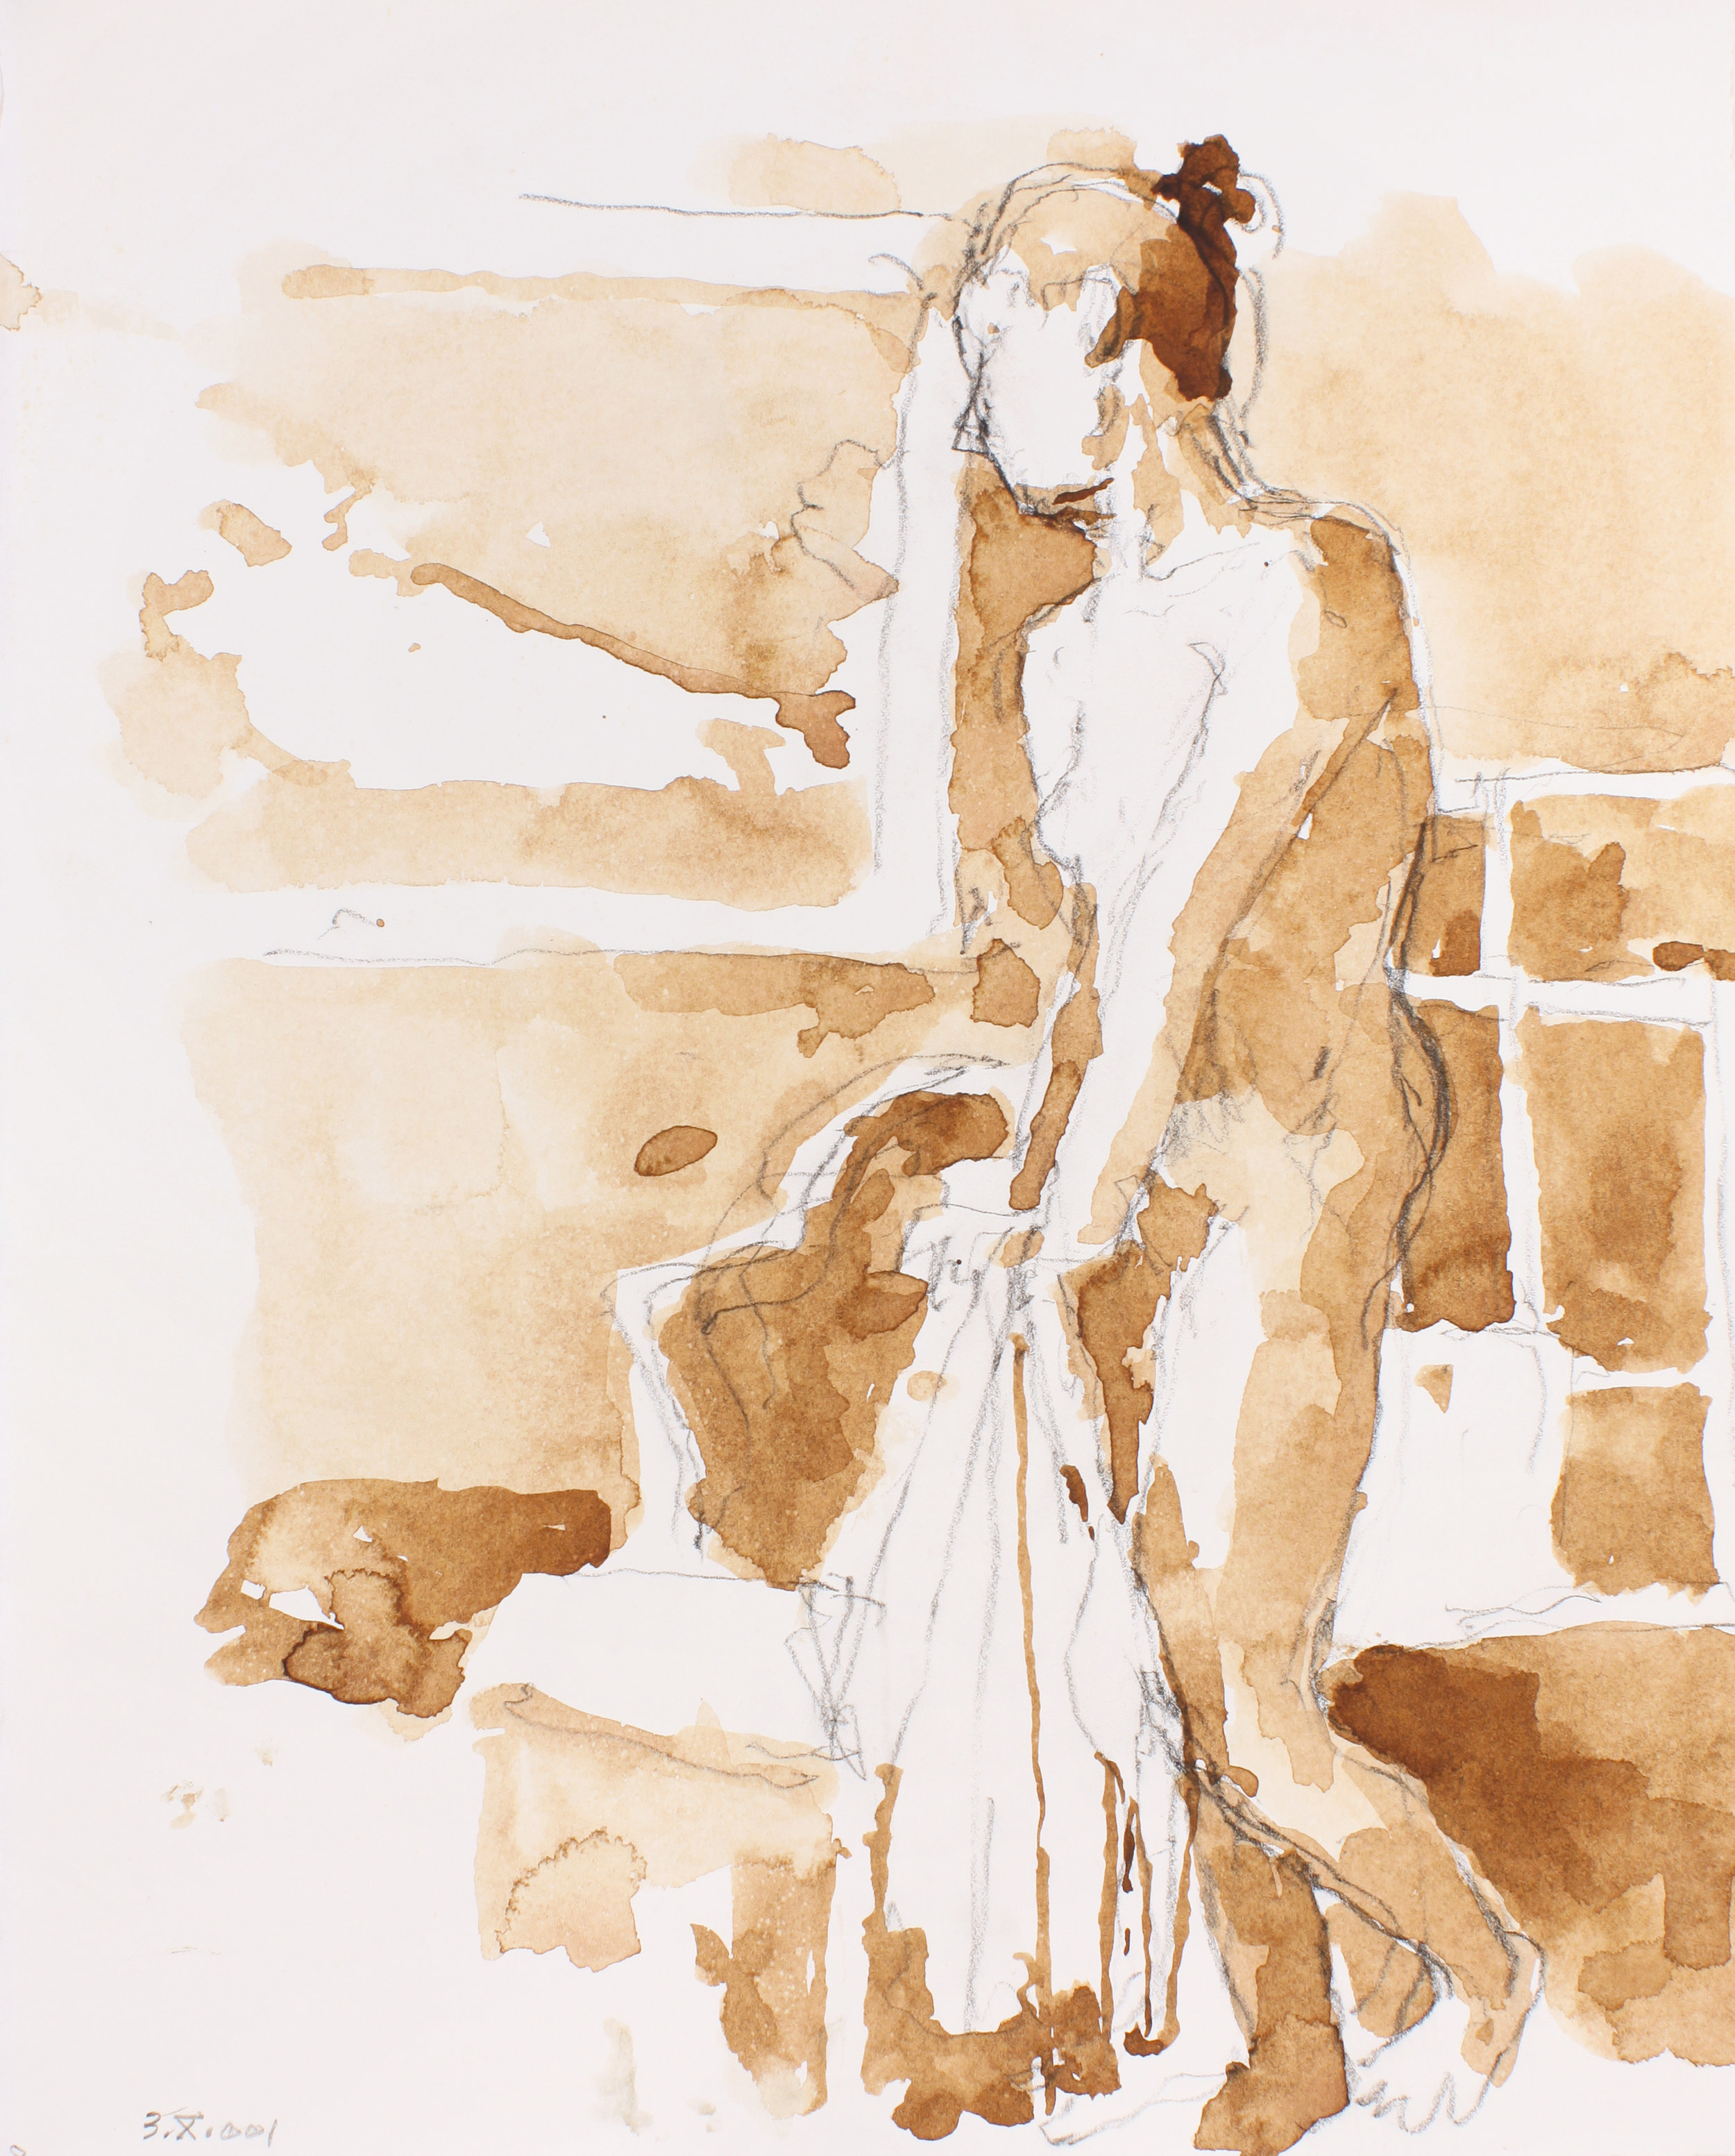 2001_Standing_Nude_in_Studio_watercolour_and_conté_on_paper_14x11in_WPF160.jpg